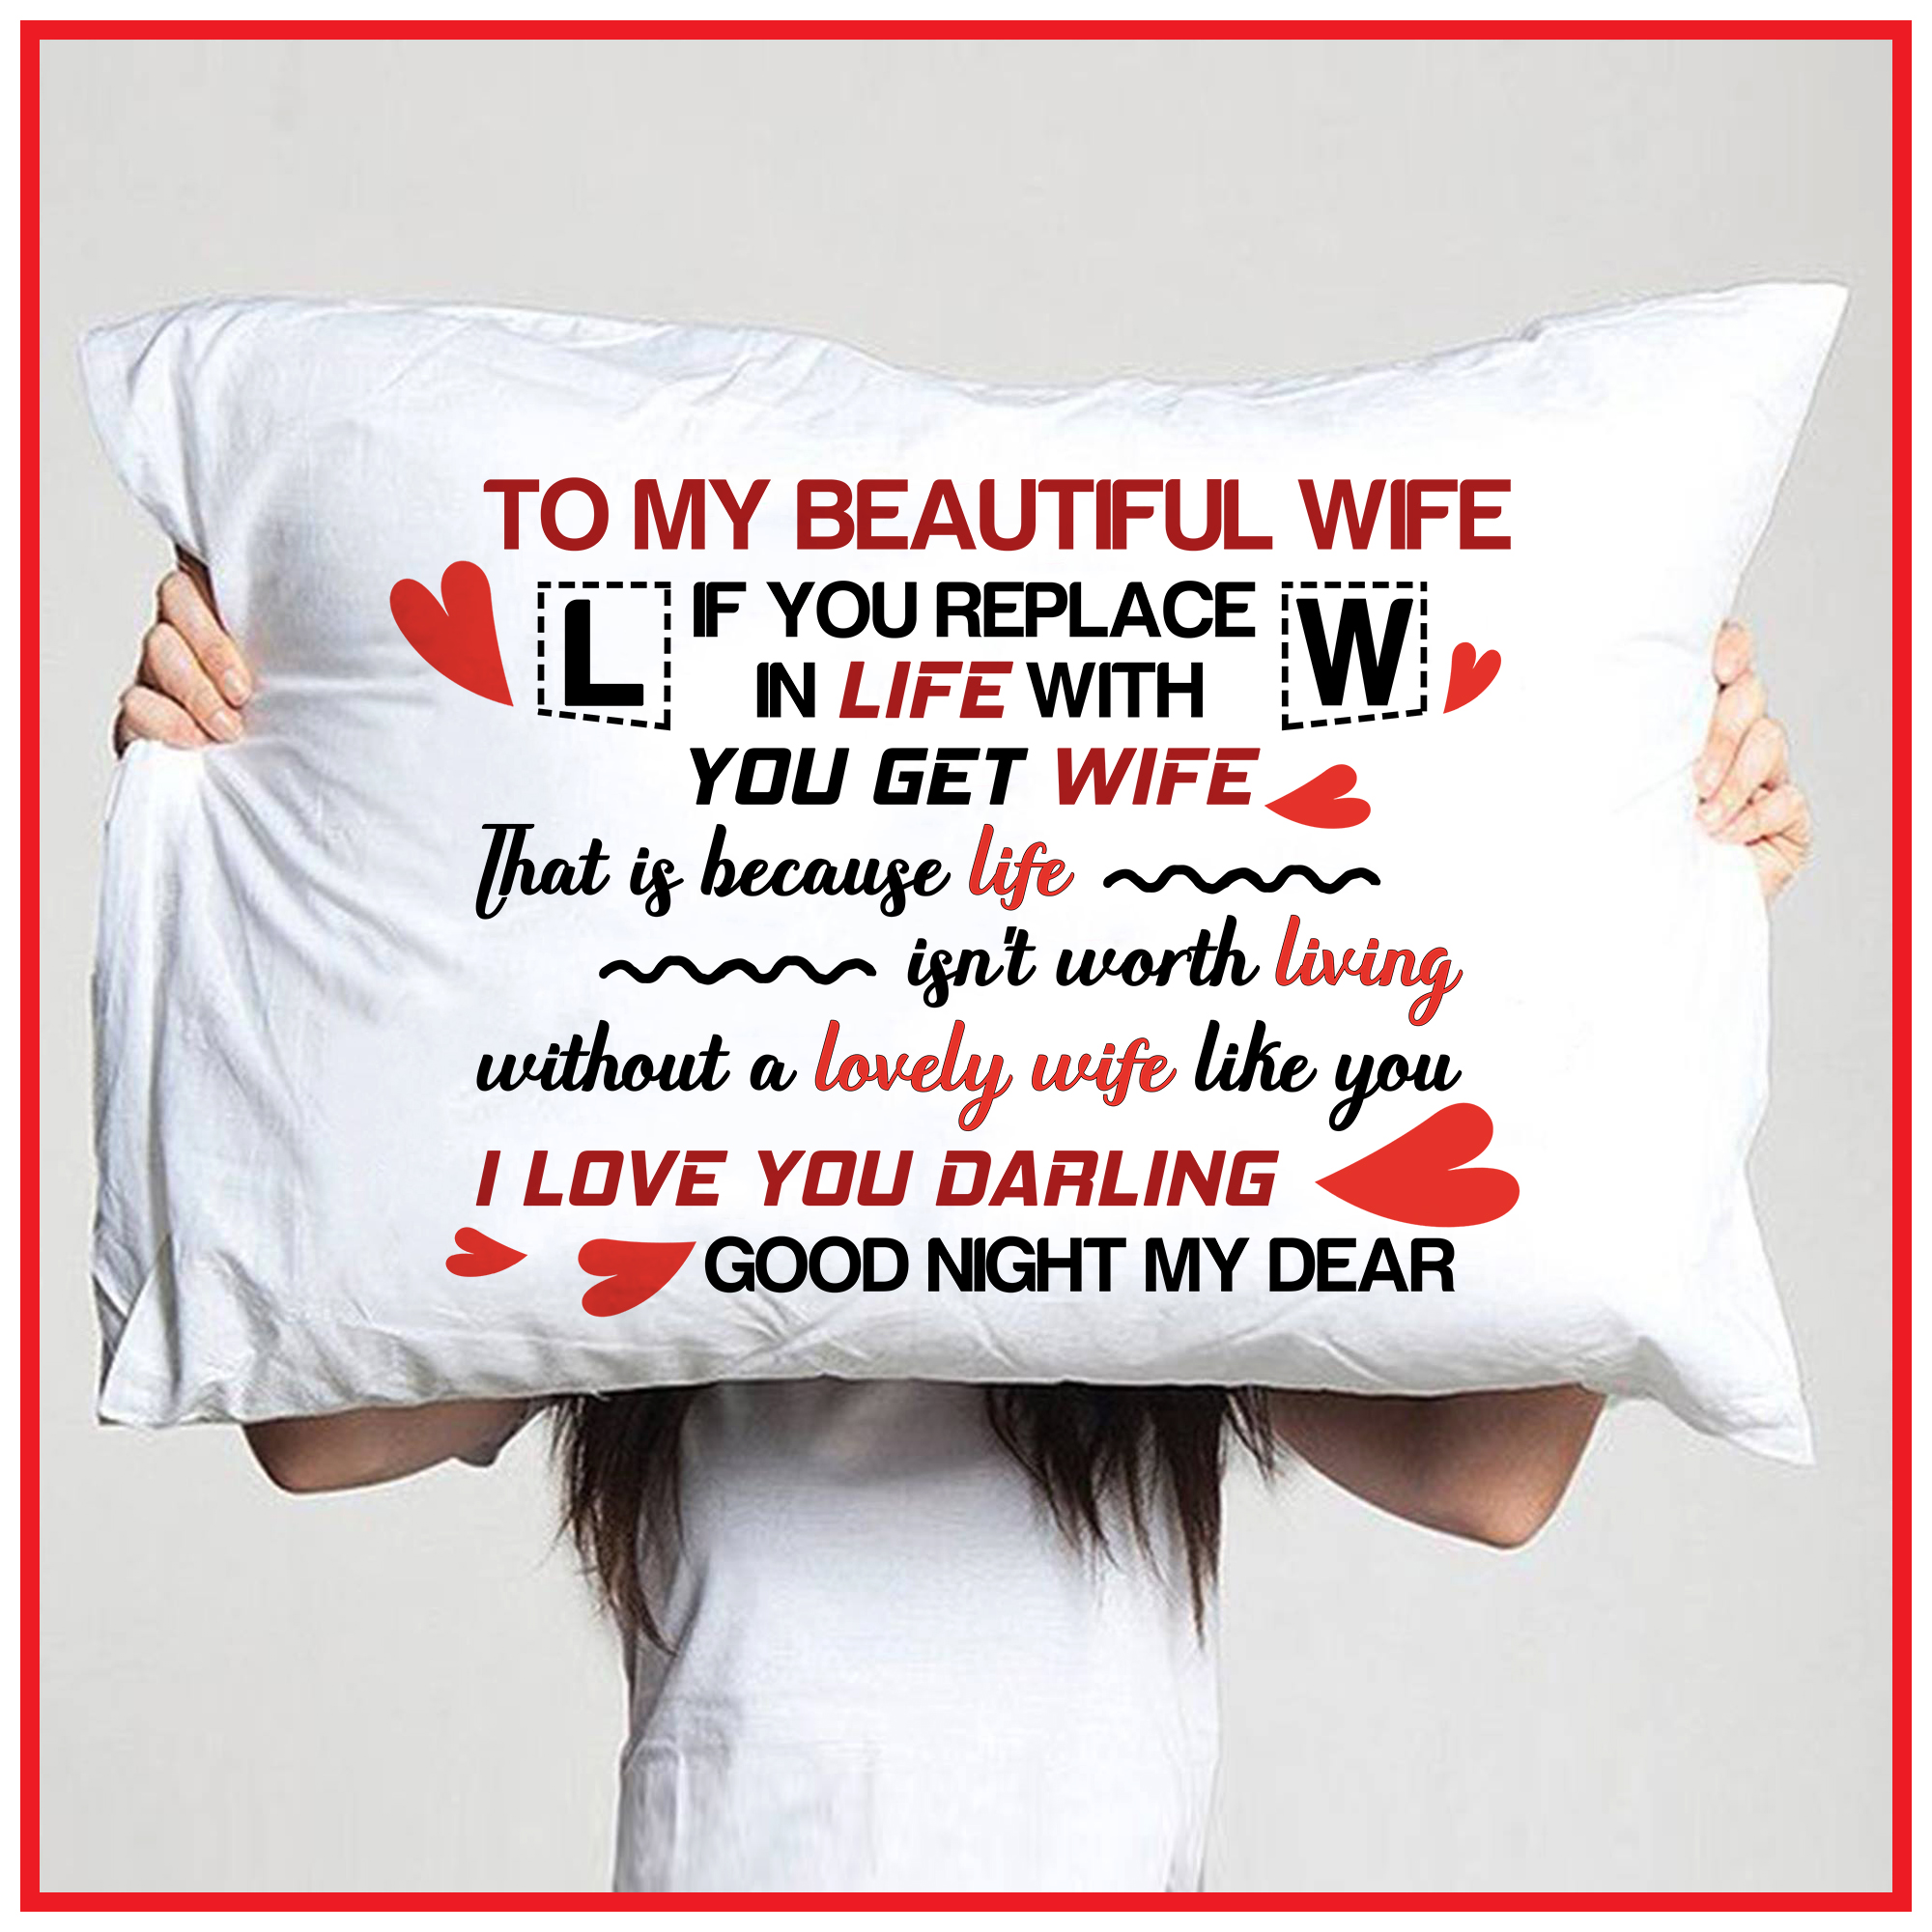 I beautiful love you wife to my Poem To